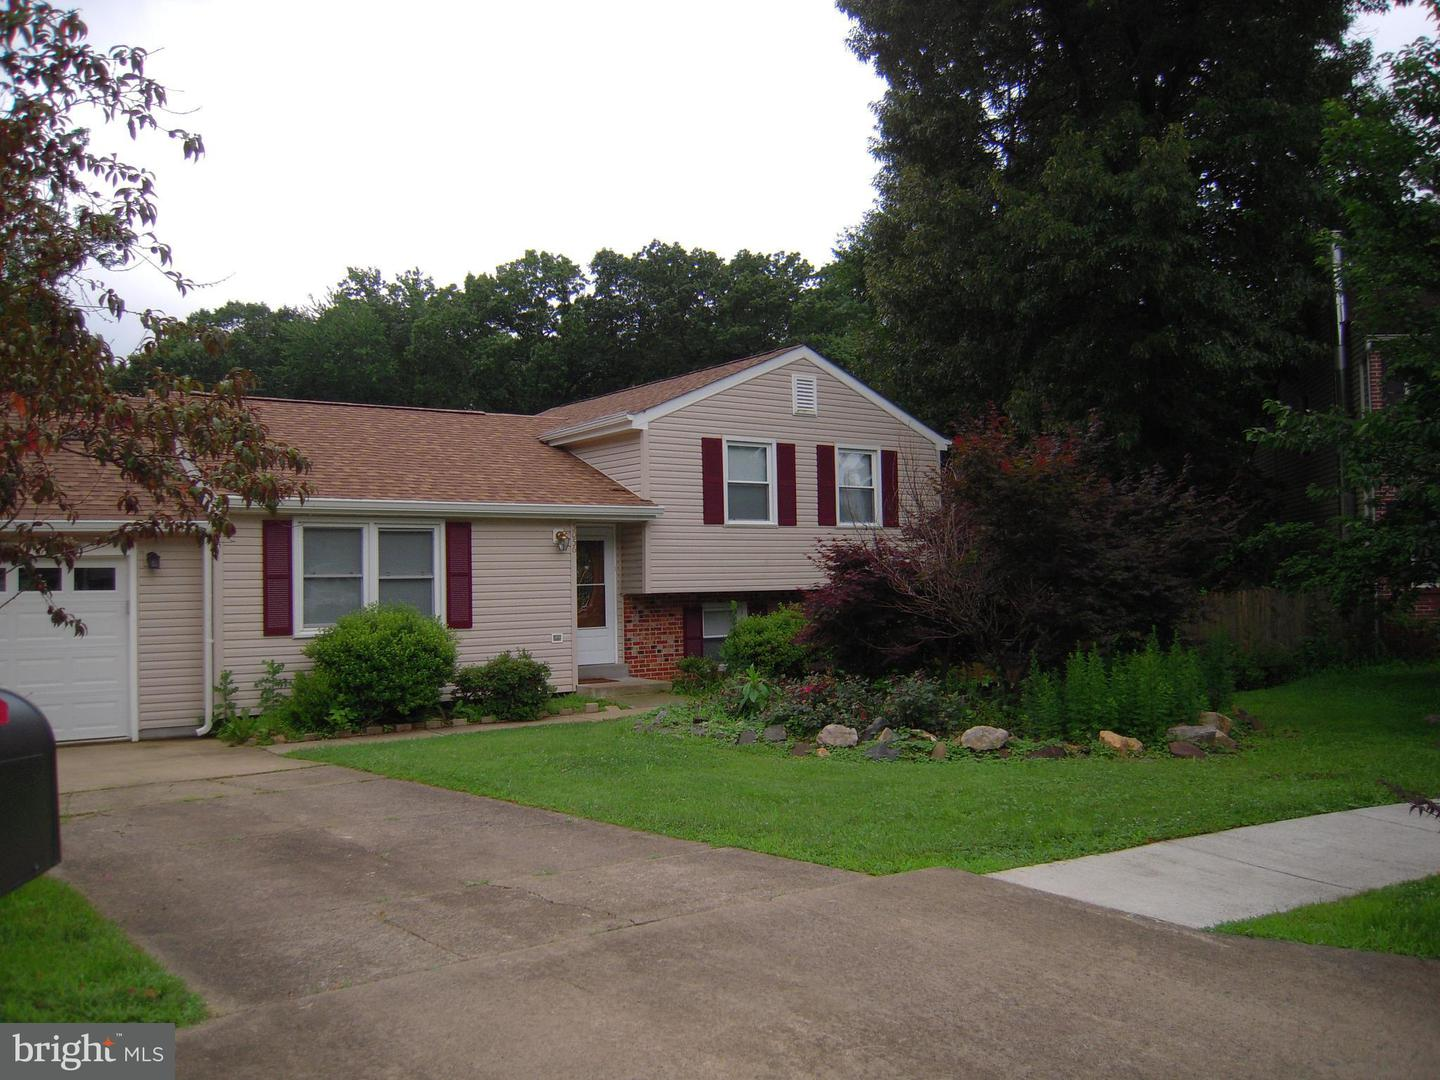 Other Residential for Rent at 5056 Kenerson Dr Fairfax, Virginia 22032 United States